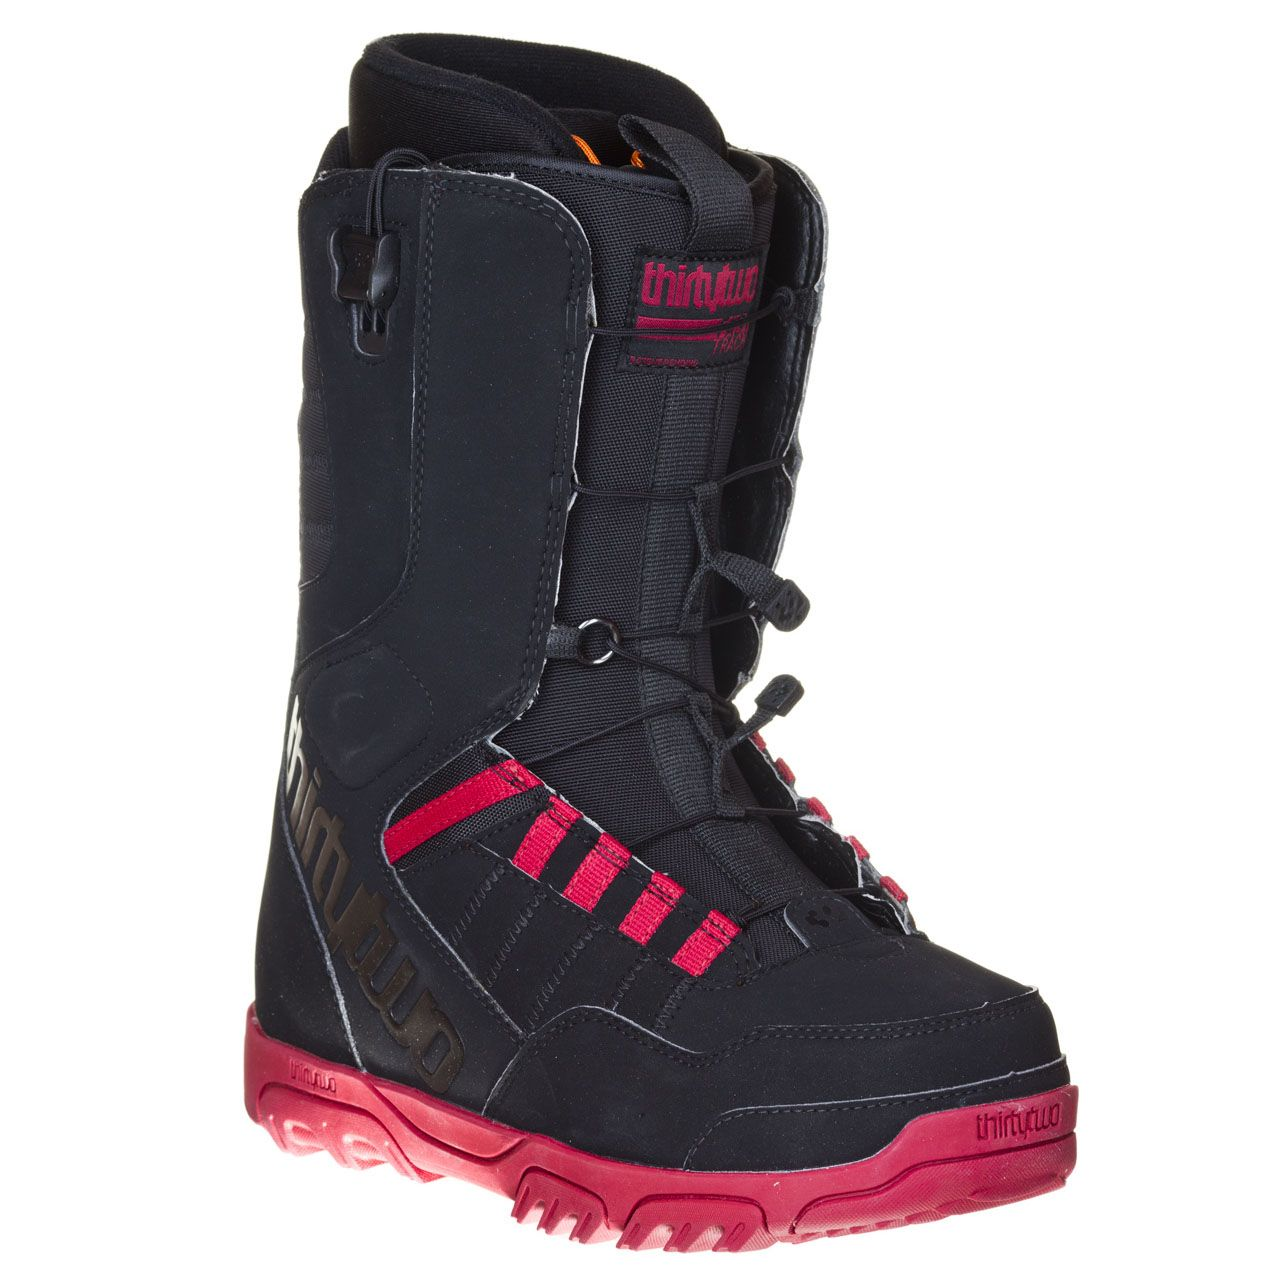 Thirtytwo Prion Ft Combat Boots Army Boot Boots